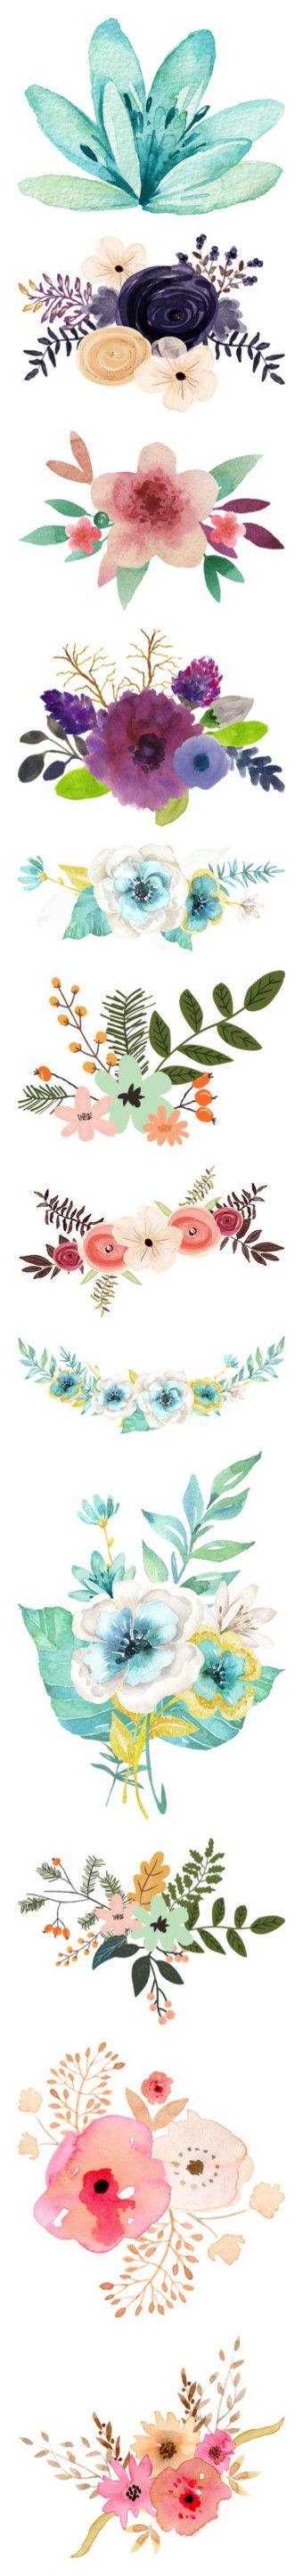 """""""Watercolor Bits & Botanicals"""" by awsewell ❤ liked on Polyvore featuring flowers, backgrounds, fillers, extras, blue, detail, embellishment, decorations, floral and effect"""